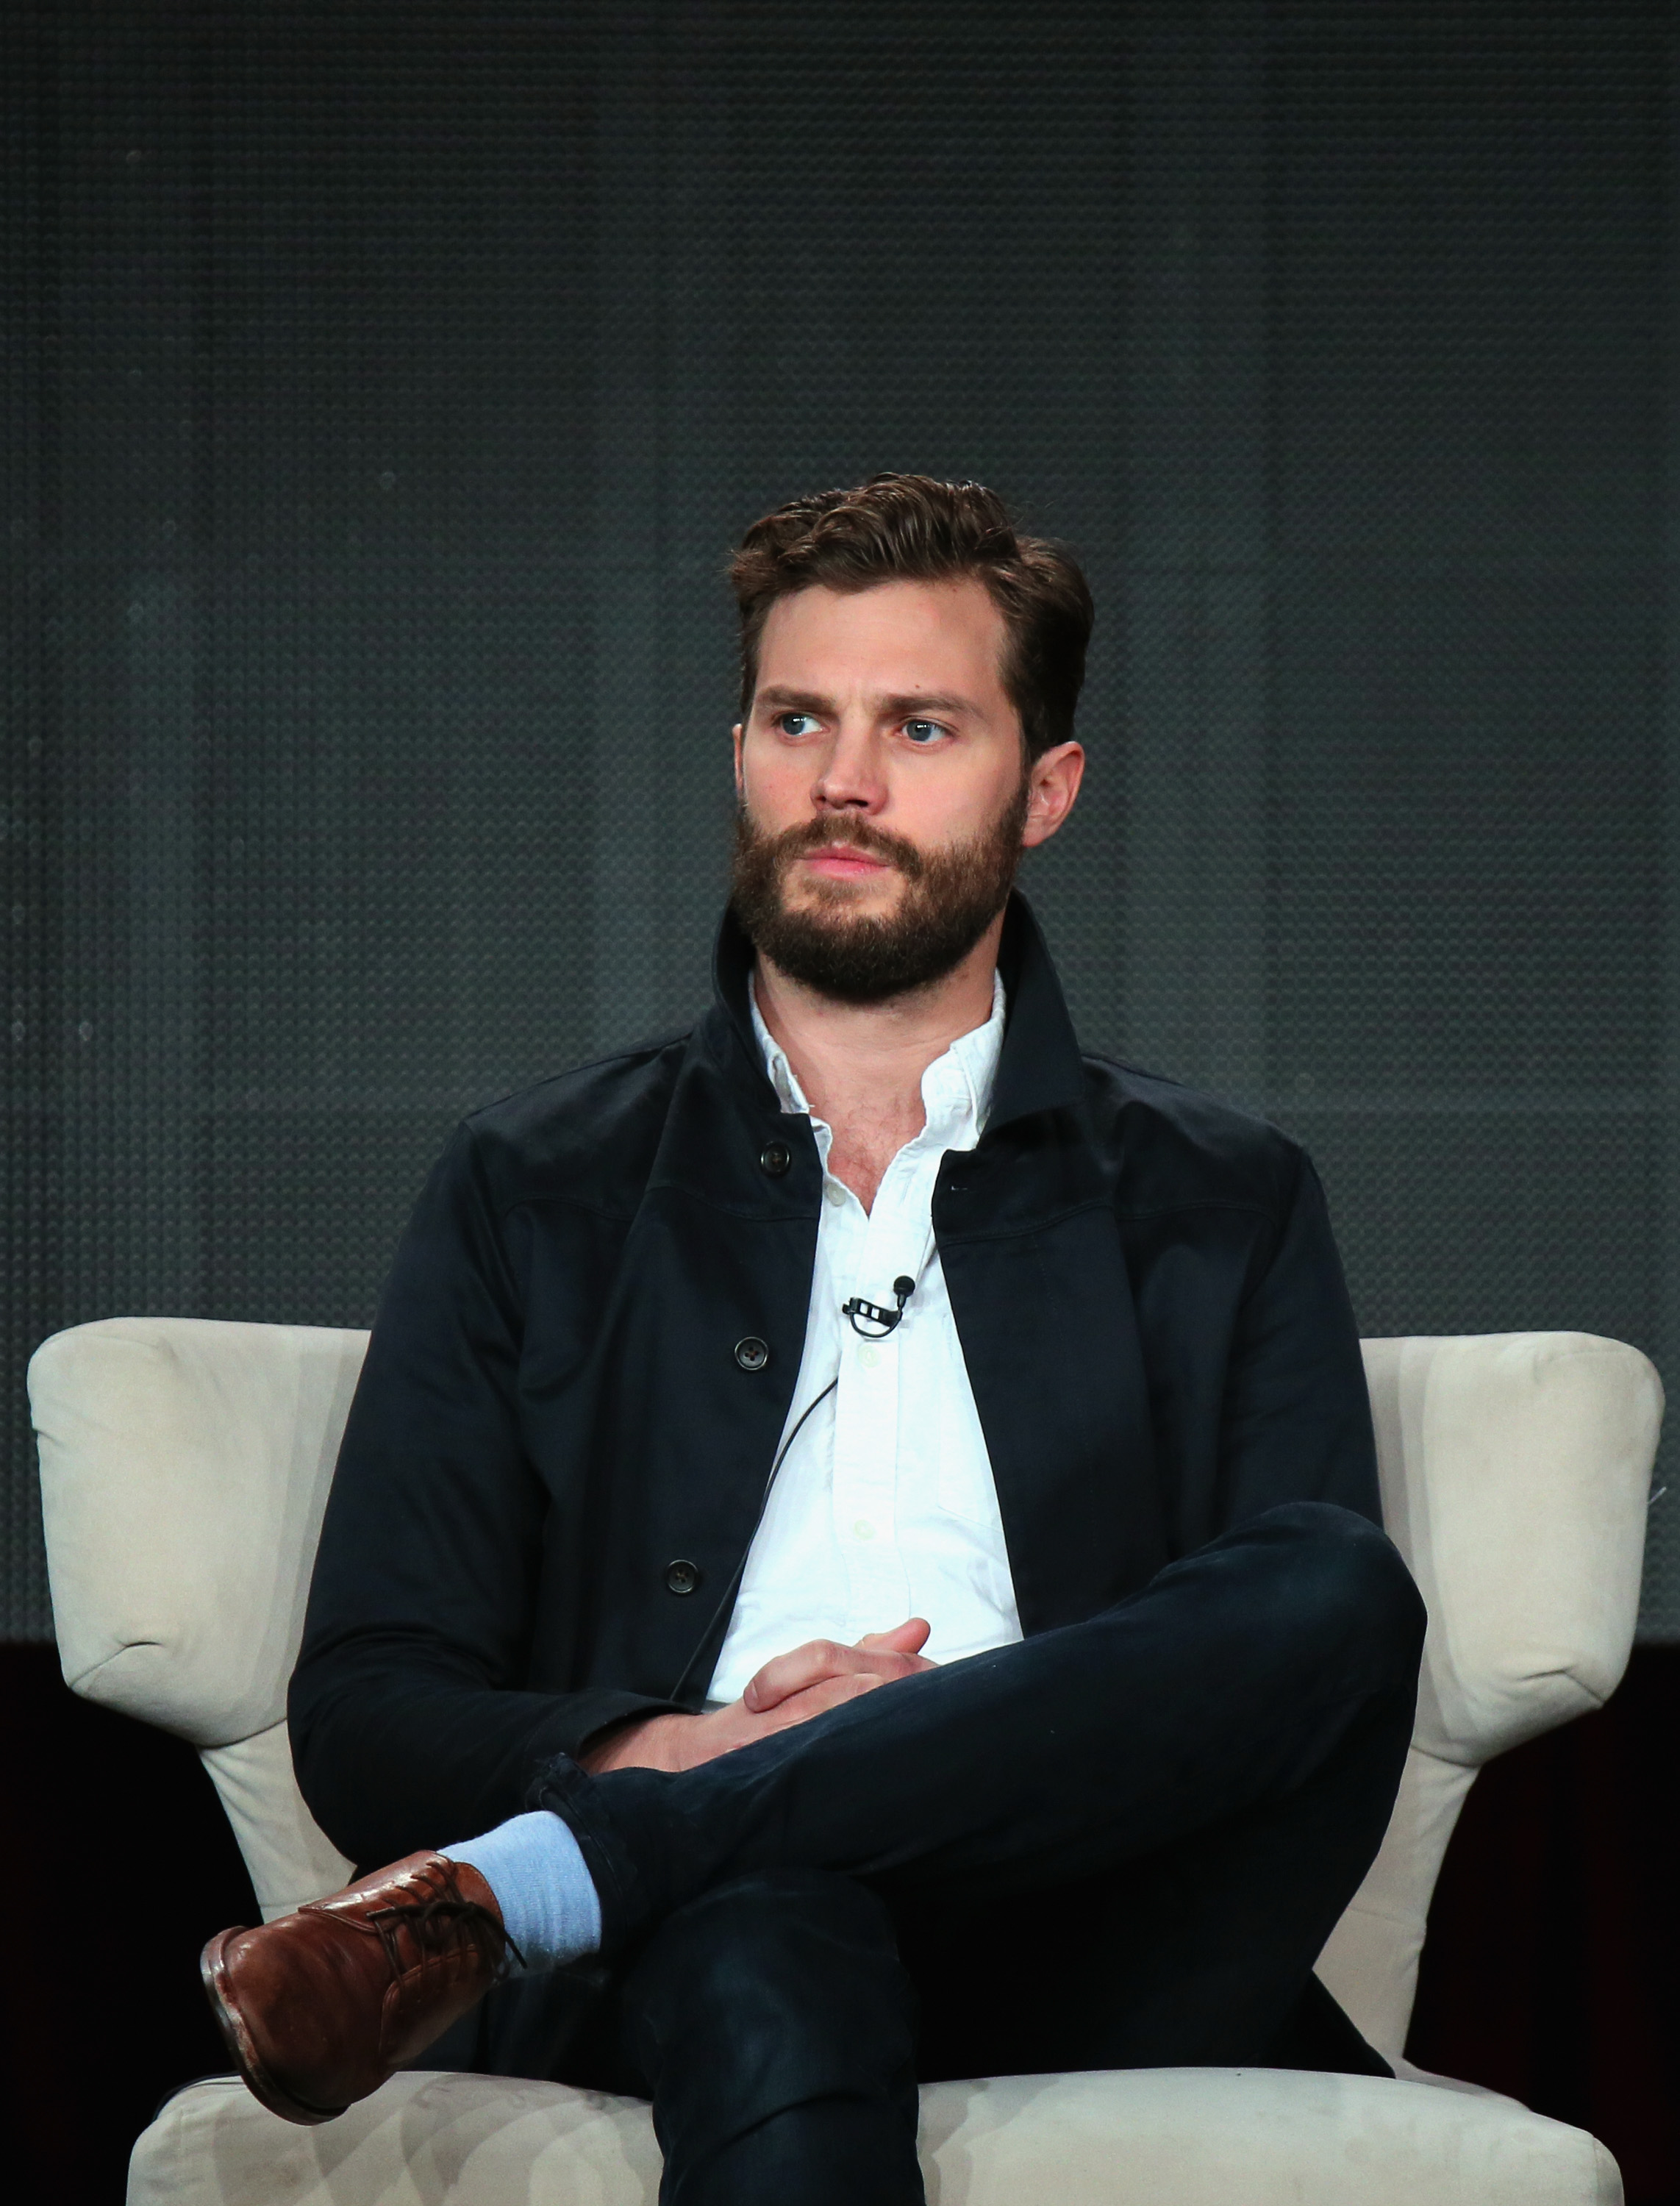 PASADENA, CA - JANUARY 07:  Jamie Dornan speaks onstage about The Fall during the Netflix TCA Press Tour at Langham Hotel on January 7, 2015 in Pasadena, California.  (Photo by Mark Davis/Getty Images for Netflix)  Getty, TL